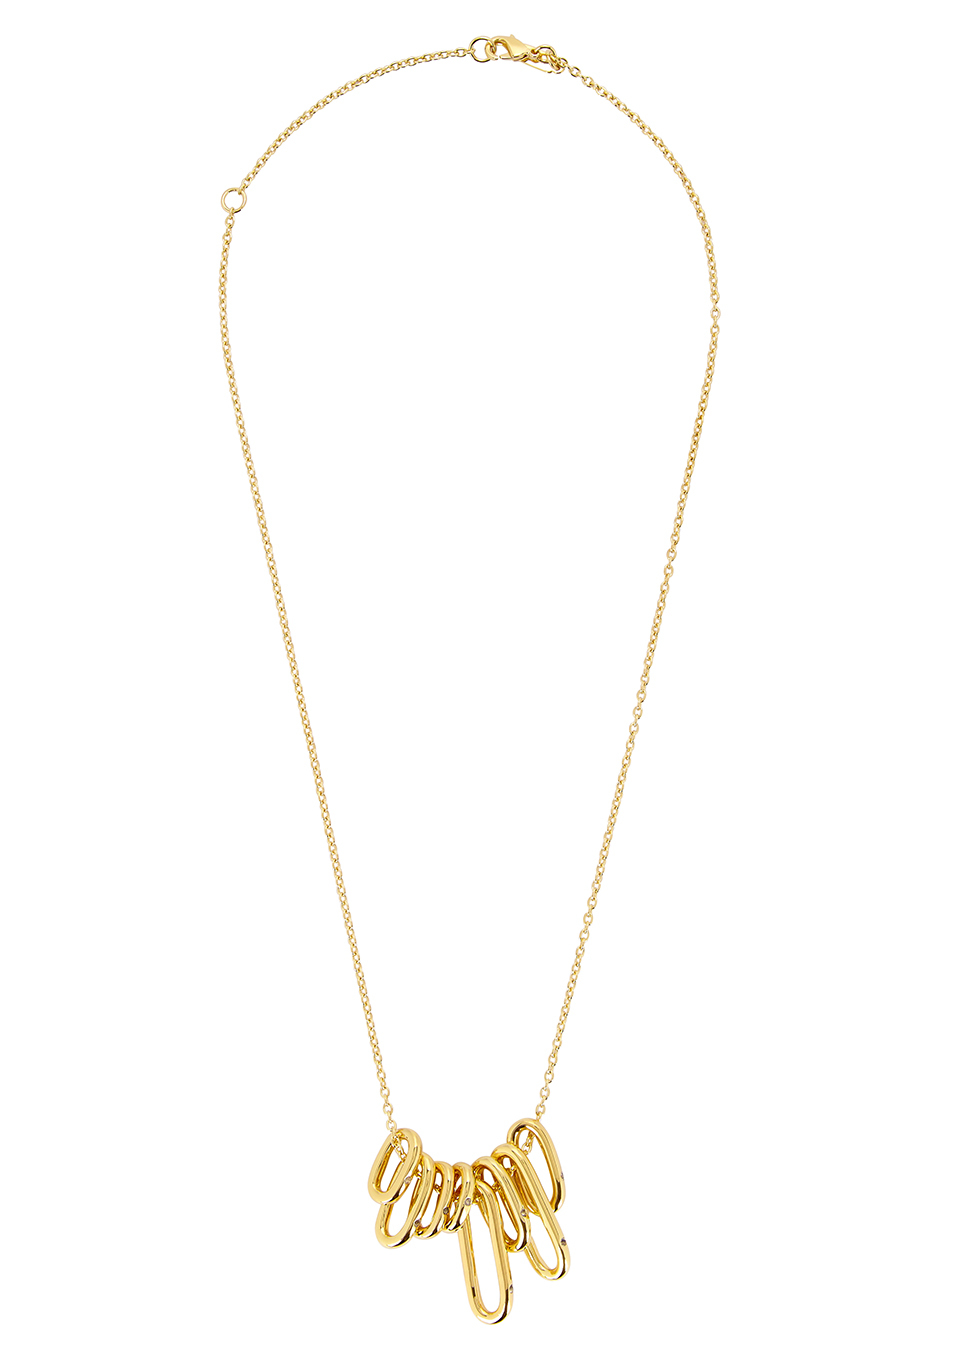 Marit 23kt Gold Plated Necklace - predominant colour: gold; occasions: evening, occasion; style: pendant; length: short; size: standard; material: chain/metal; finish: metallic; season: a/w 2016; wardrobe: event